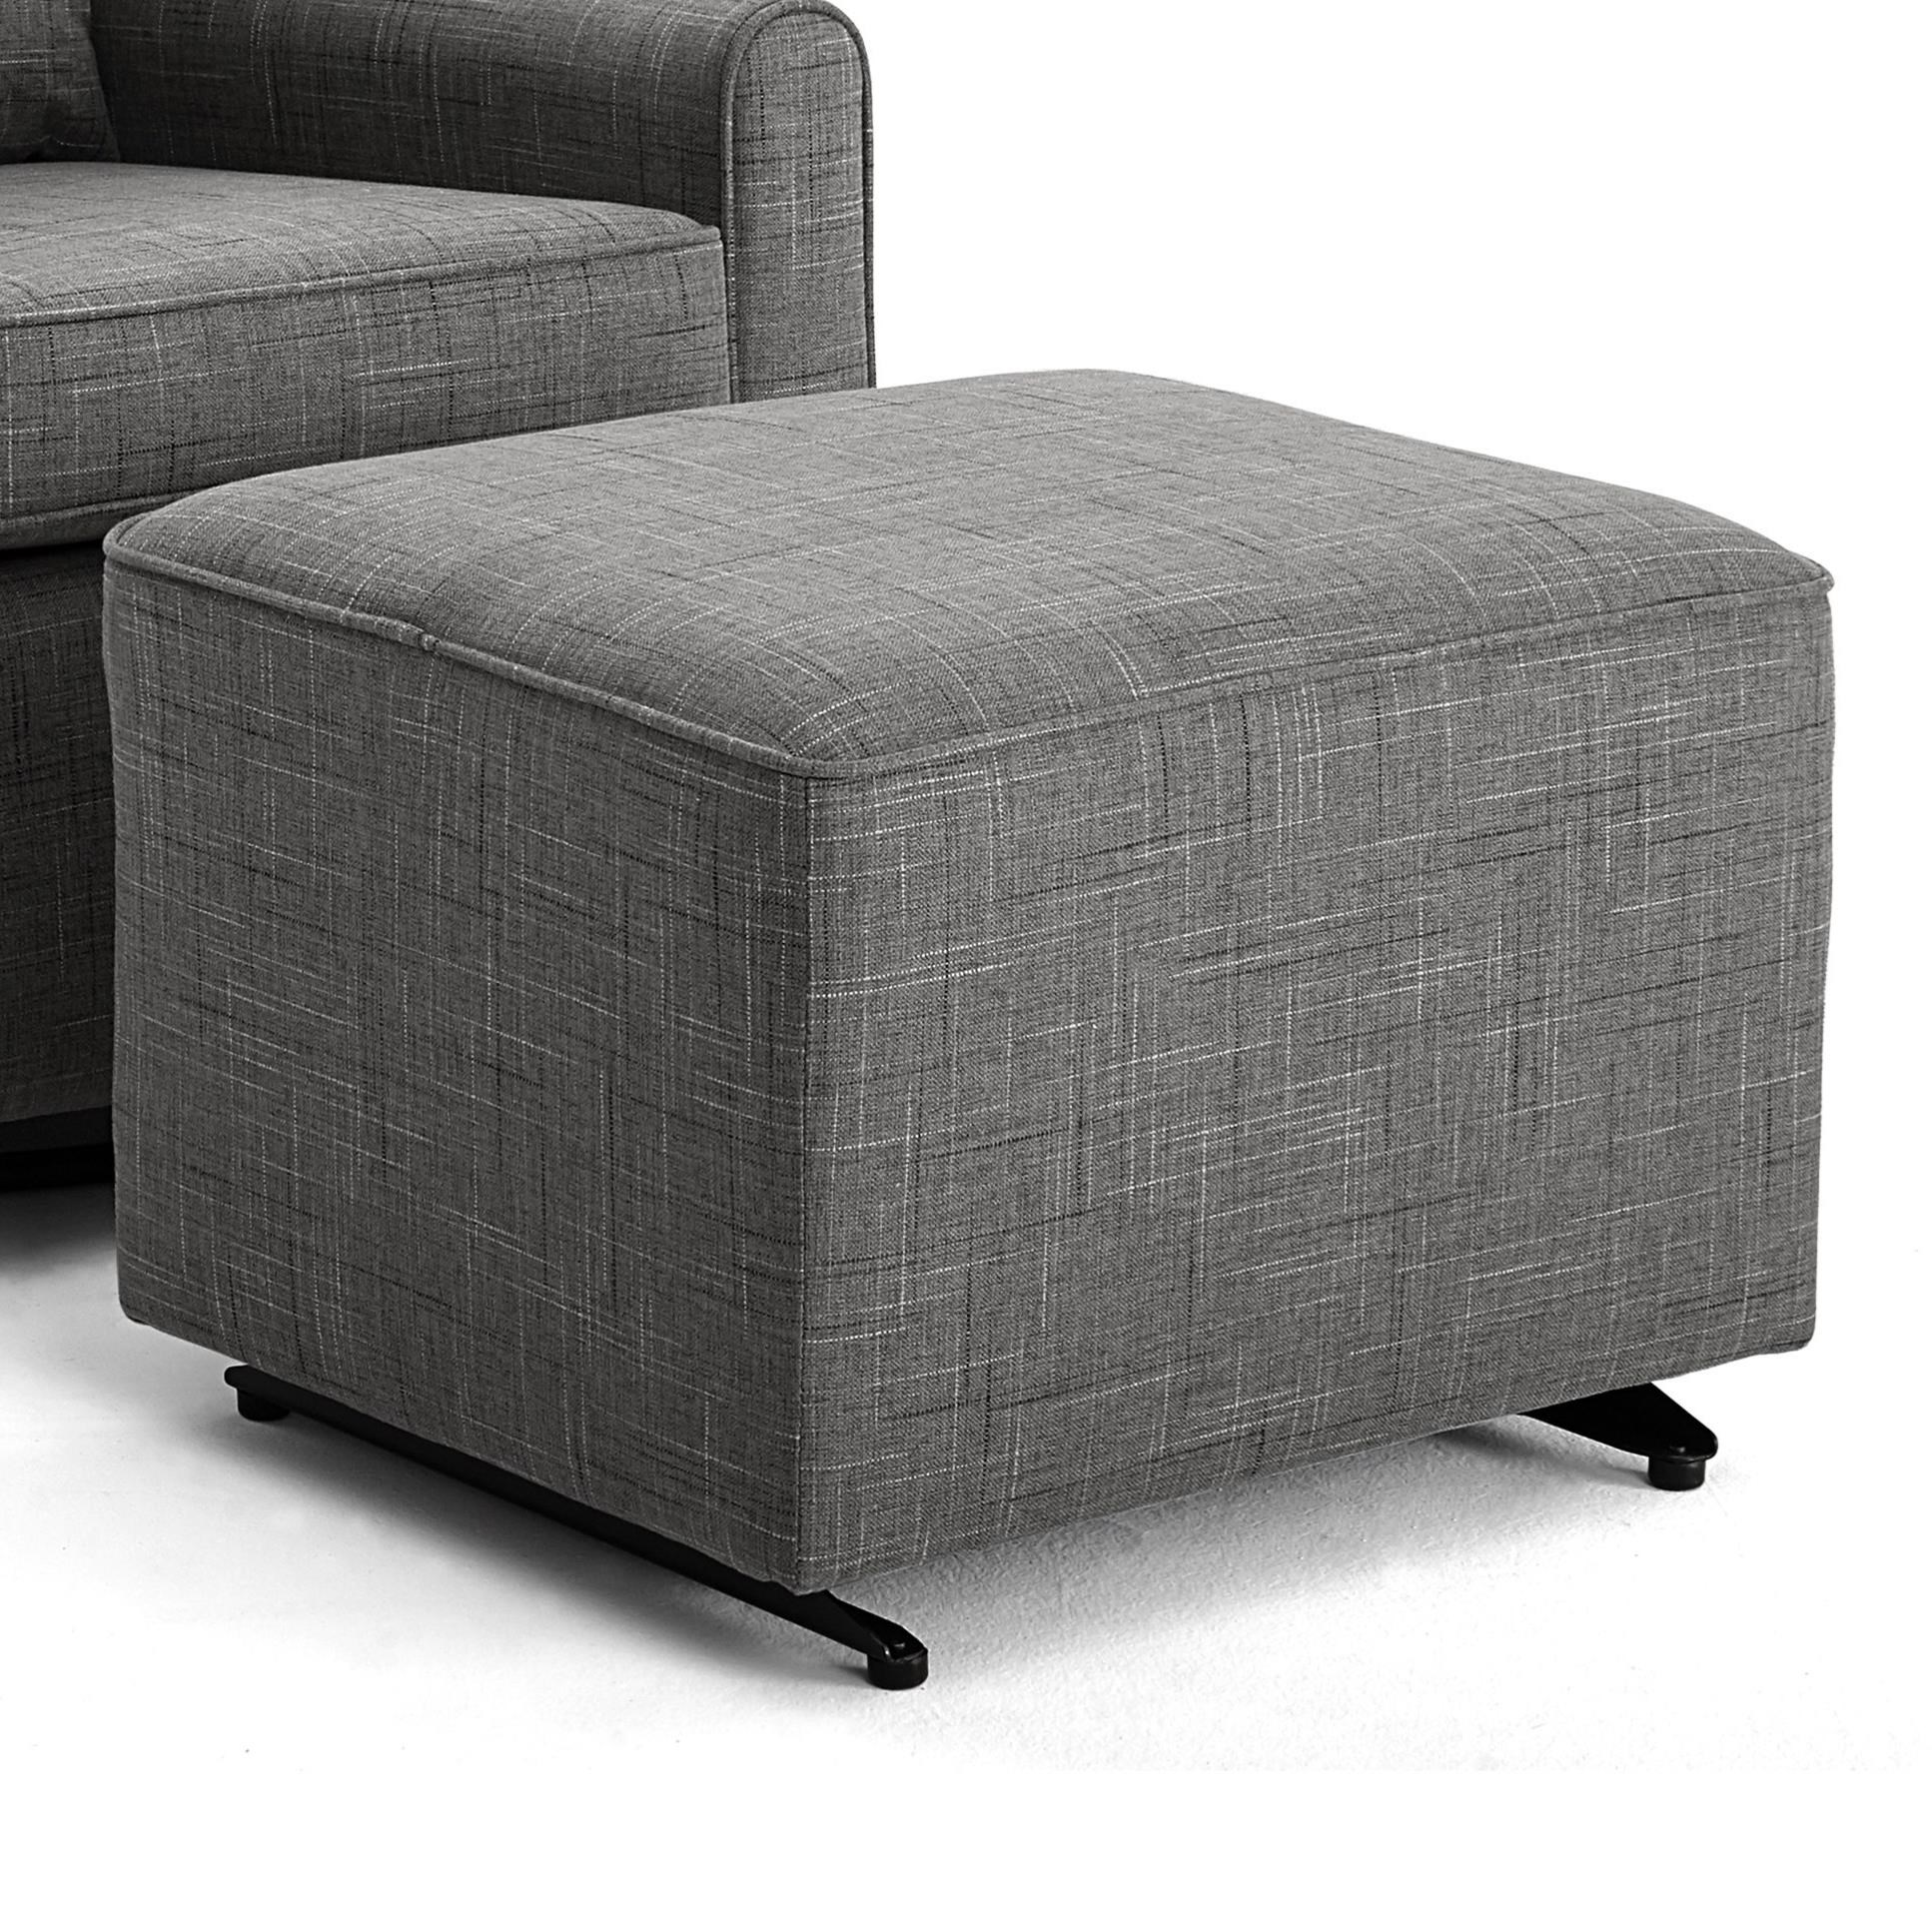 Best Xpress - Phylicia Gliding Ottoman by Best Home Furnishings at Best Home Furnishings